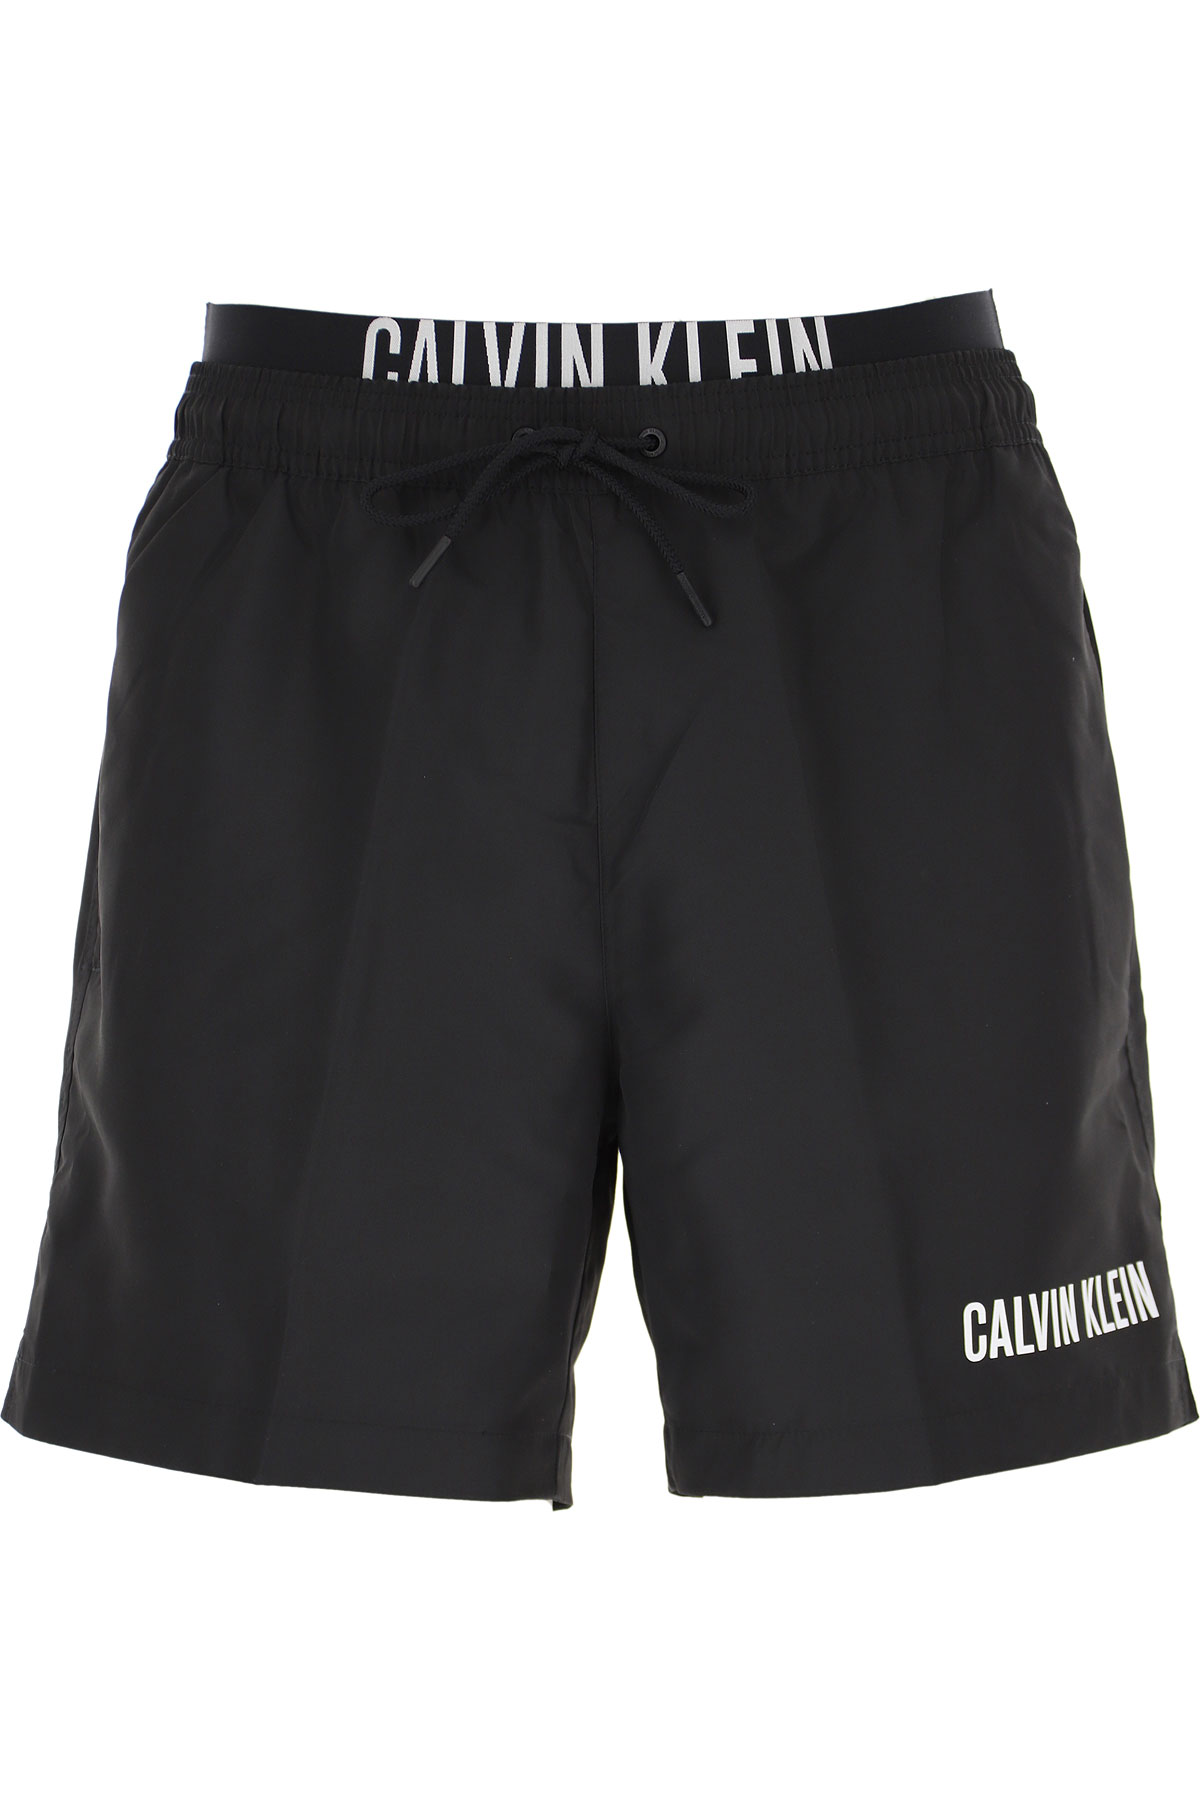 Calvin Klein Swim Shorts Trunks for Men On Sale, Black, polyester, 2019, S M L